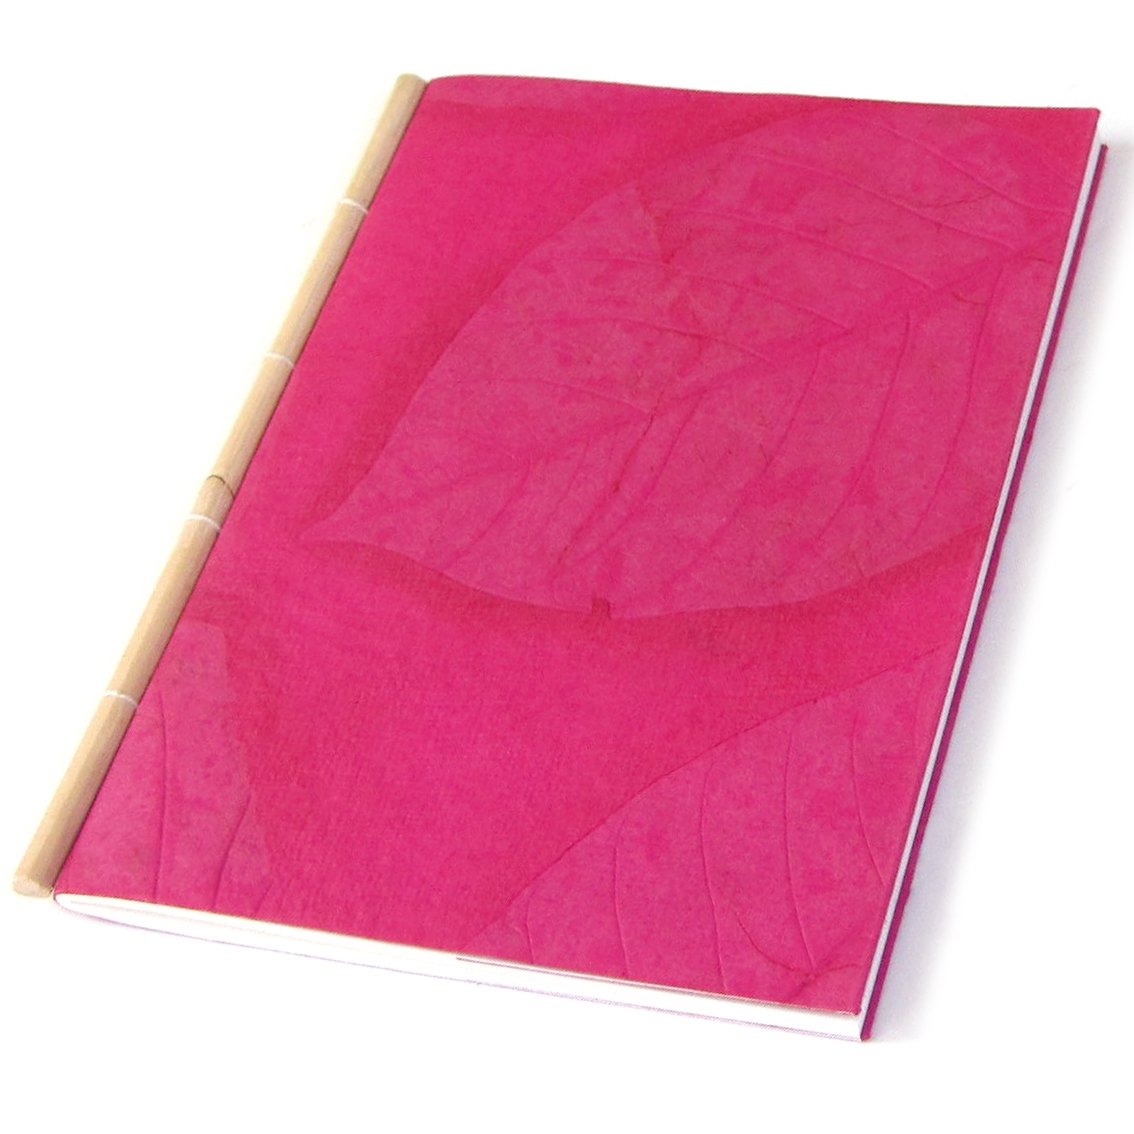 Guest book sketching 5x7 30pp scrapbook handmade pink recycled paper diary with cane spine